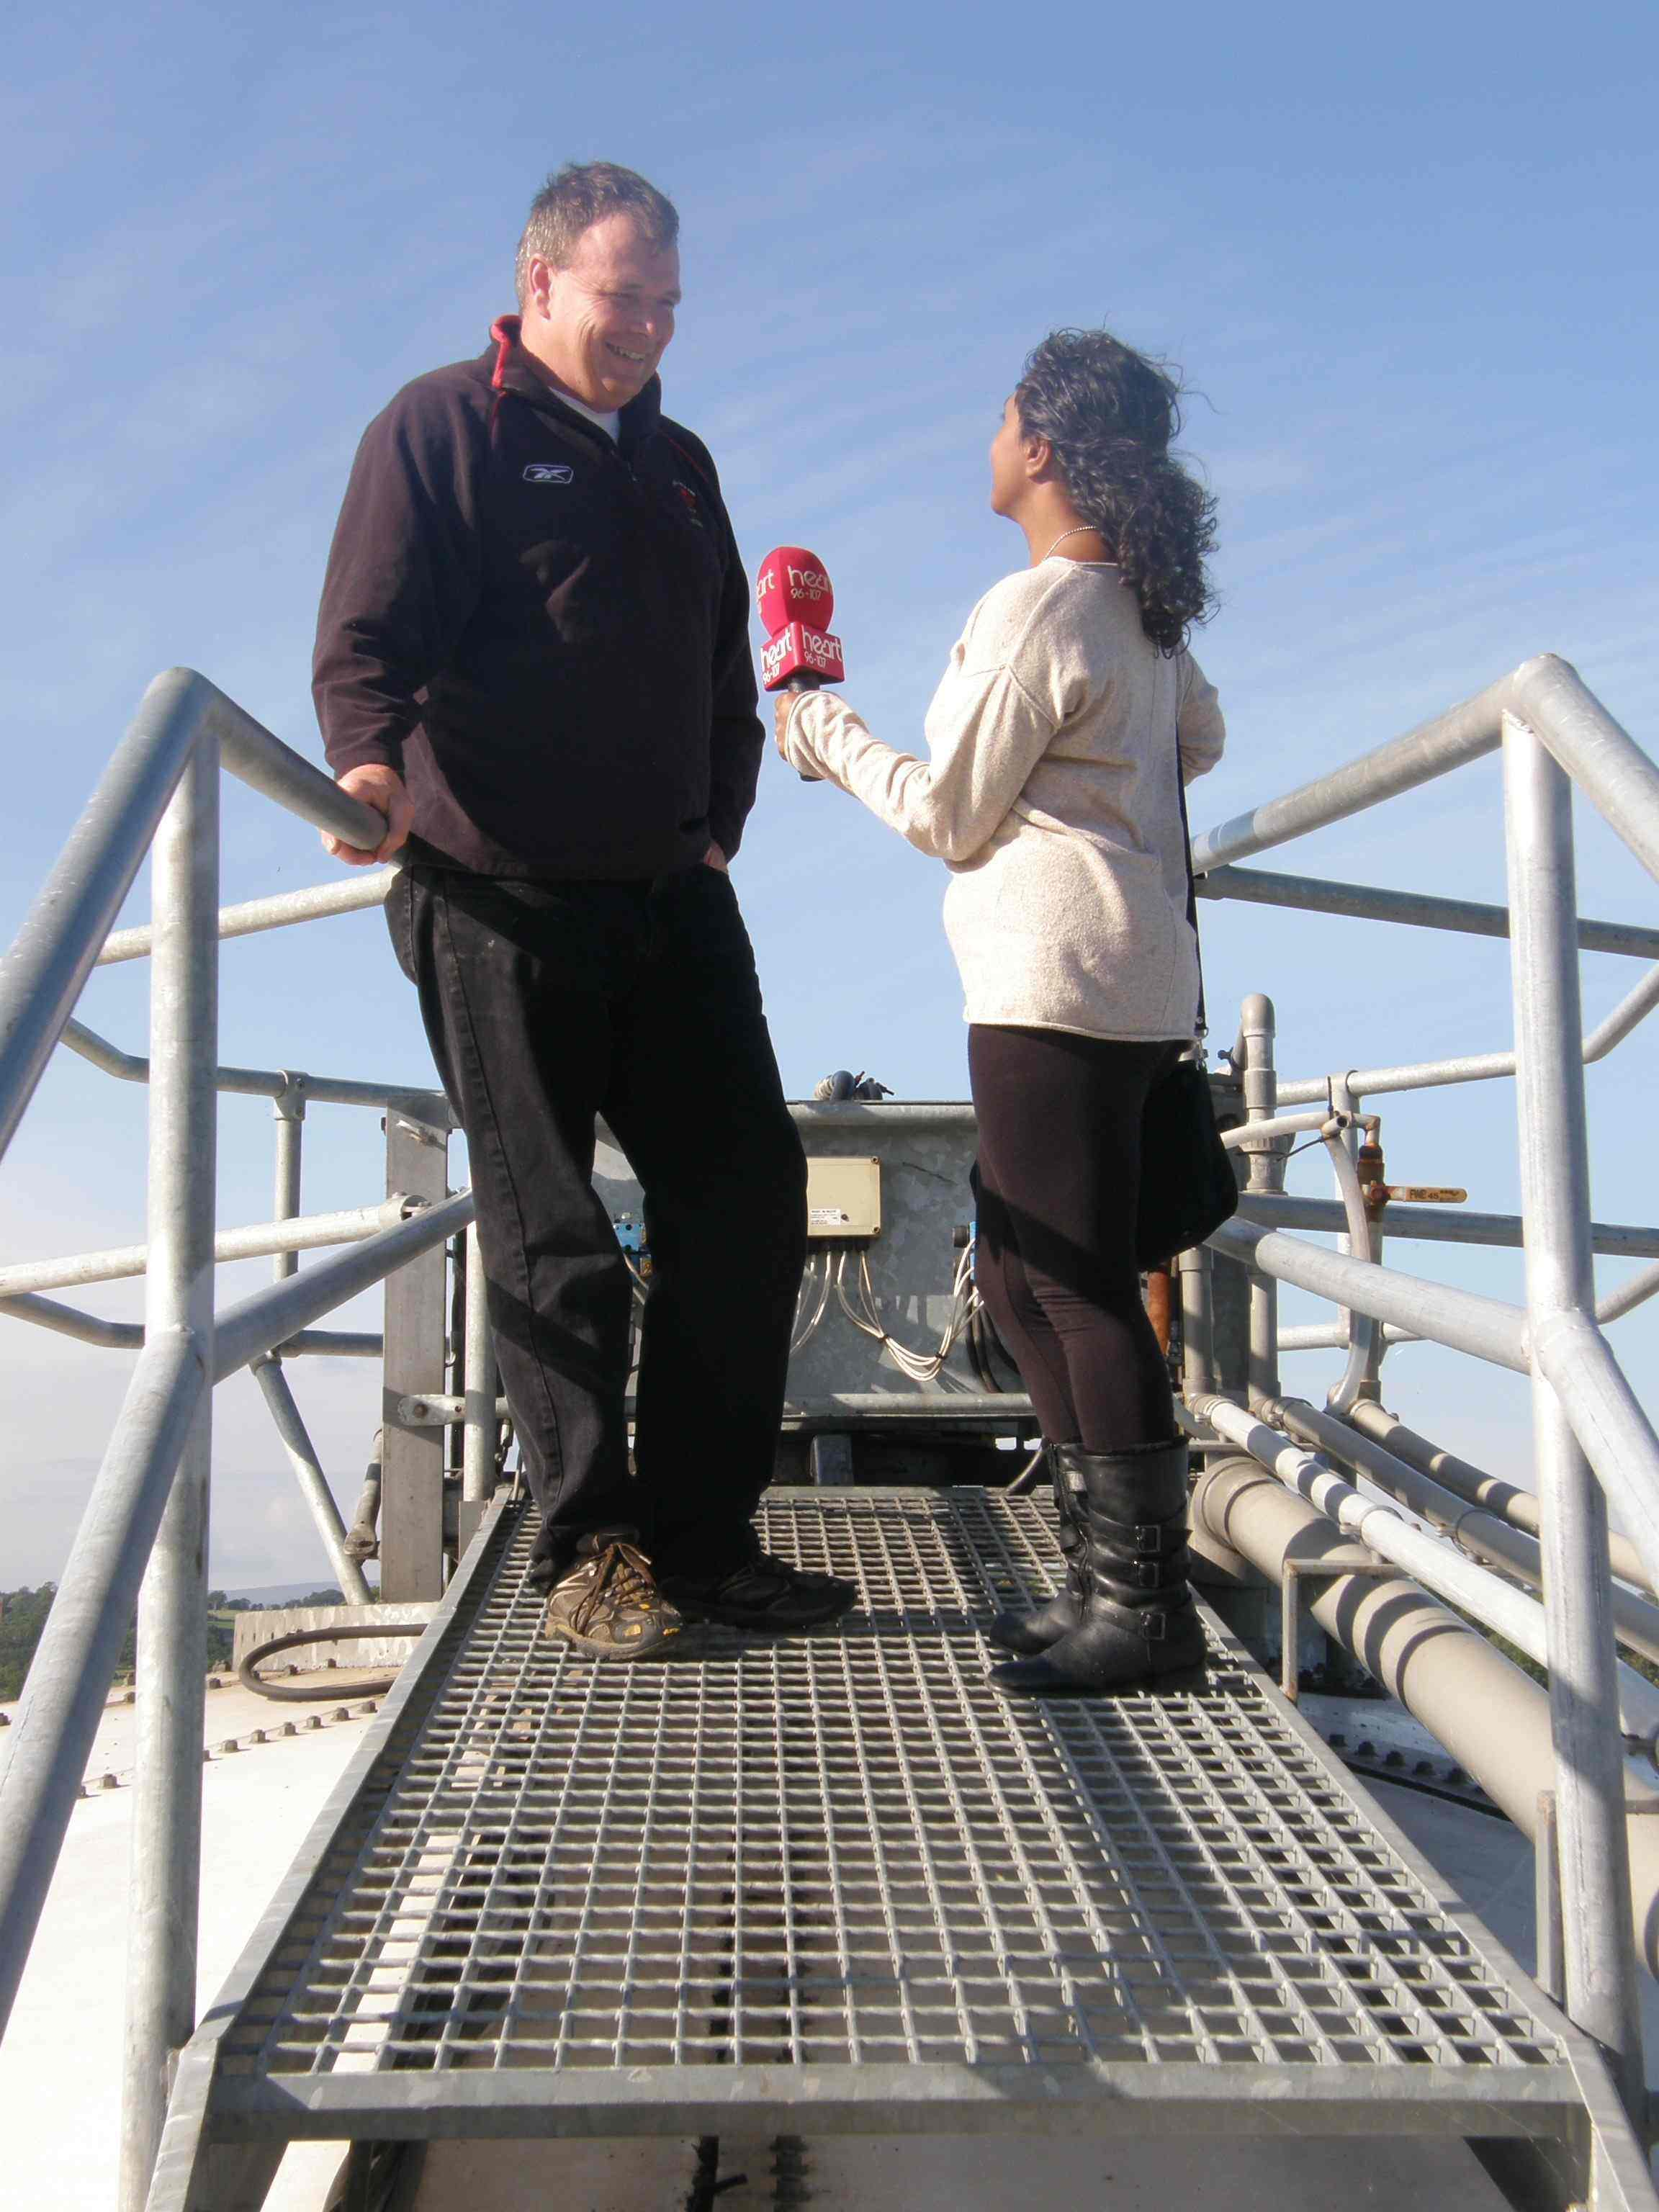 Richard Tomlinson and Charlene Smith on top of the Fre-energy digester at Lodge Farm